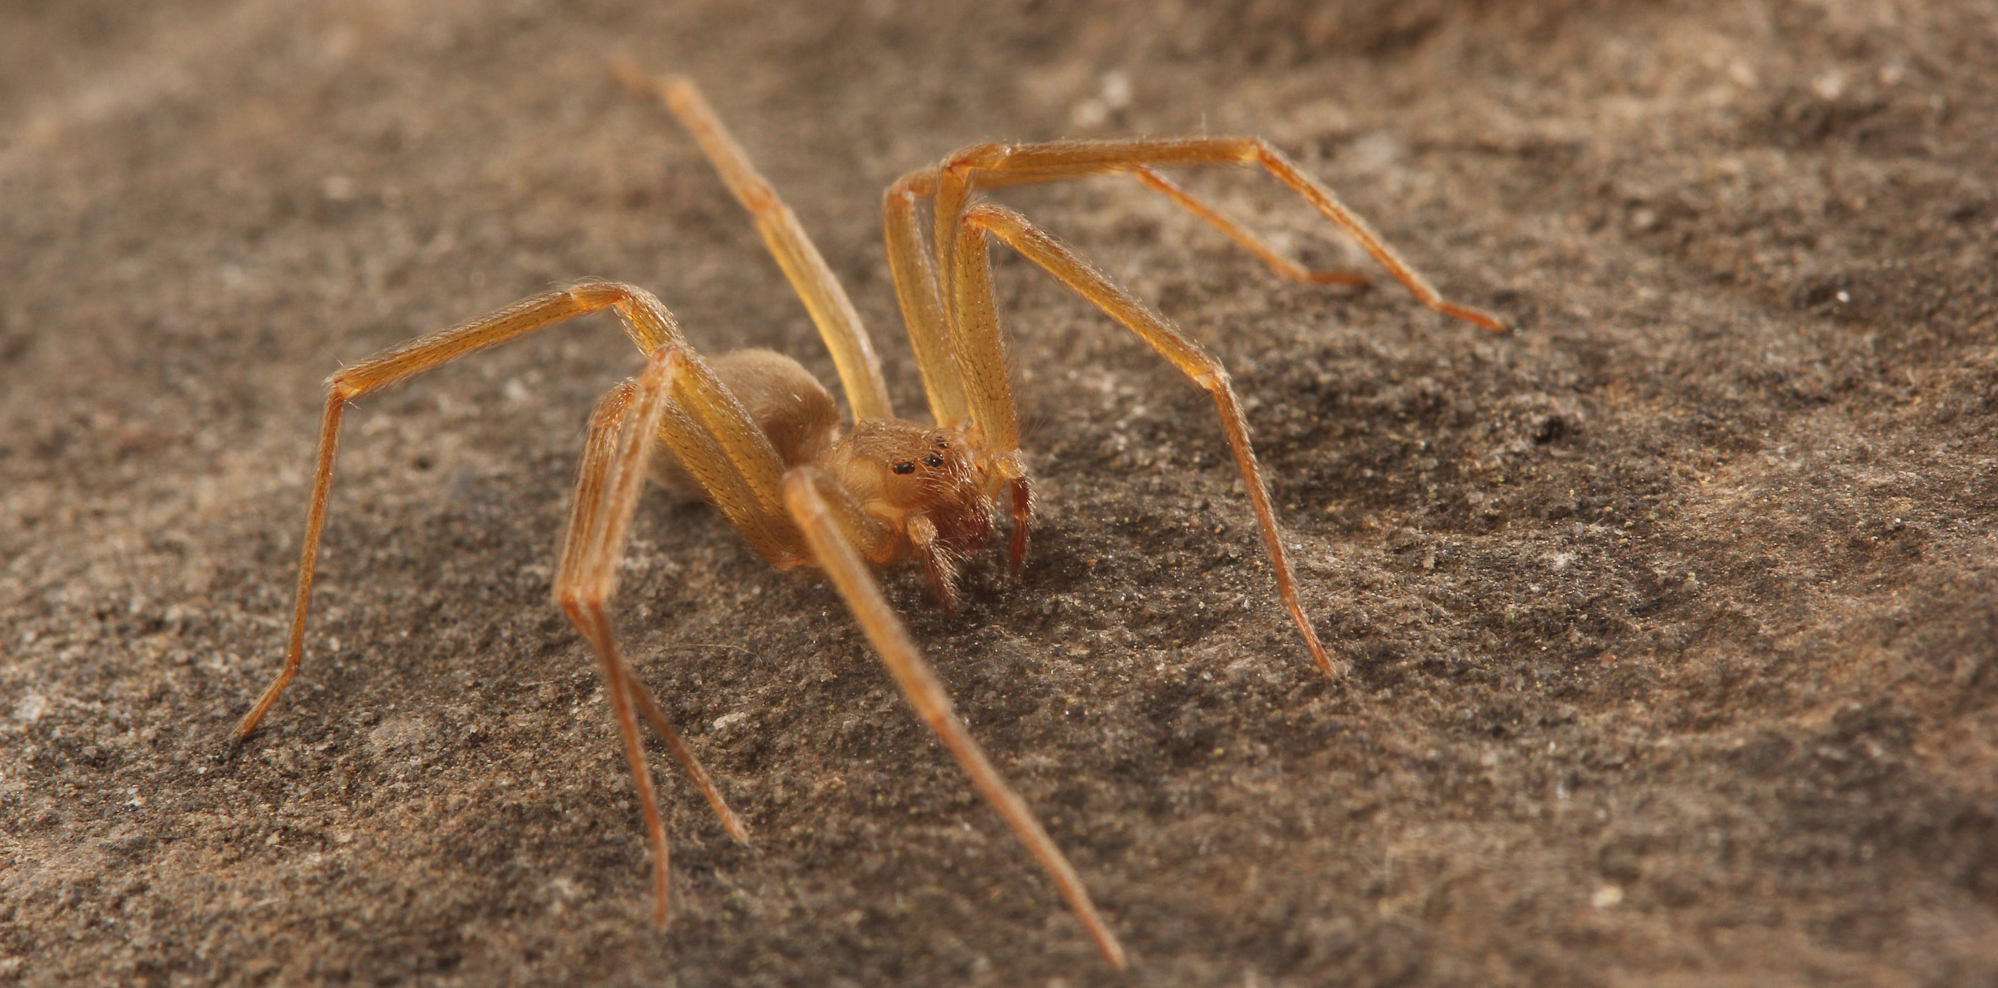 Spiders Seem To Be Getting More >> How To Tell If A Spider Is Not A Brown Recluse Spiderbytes